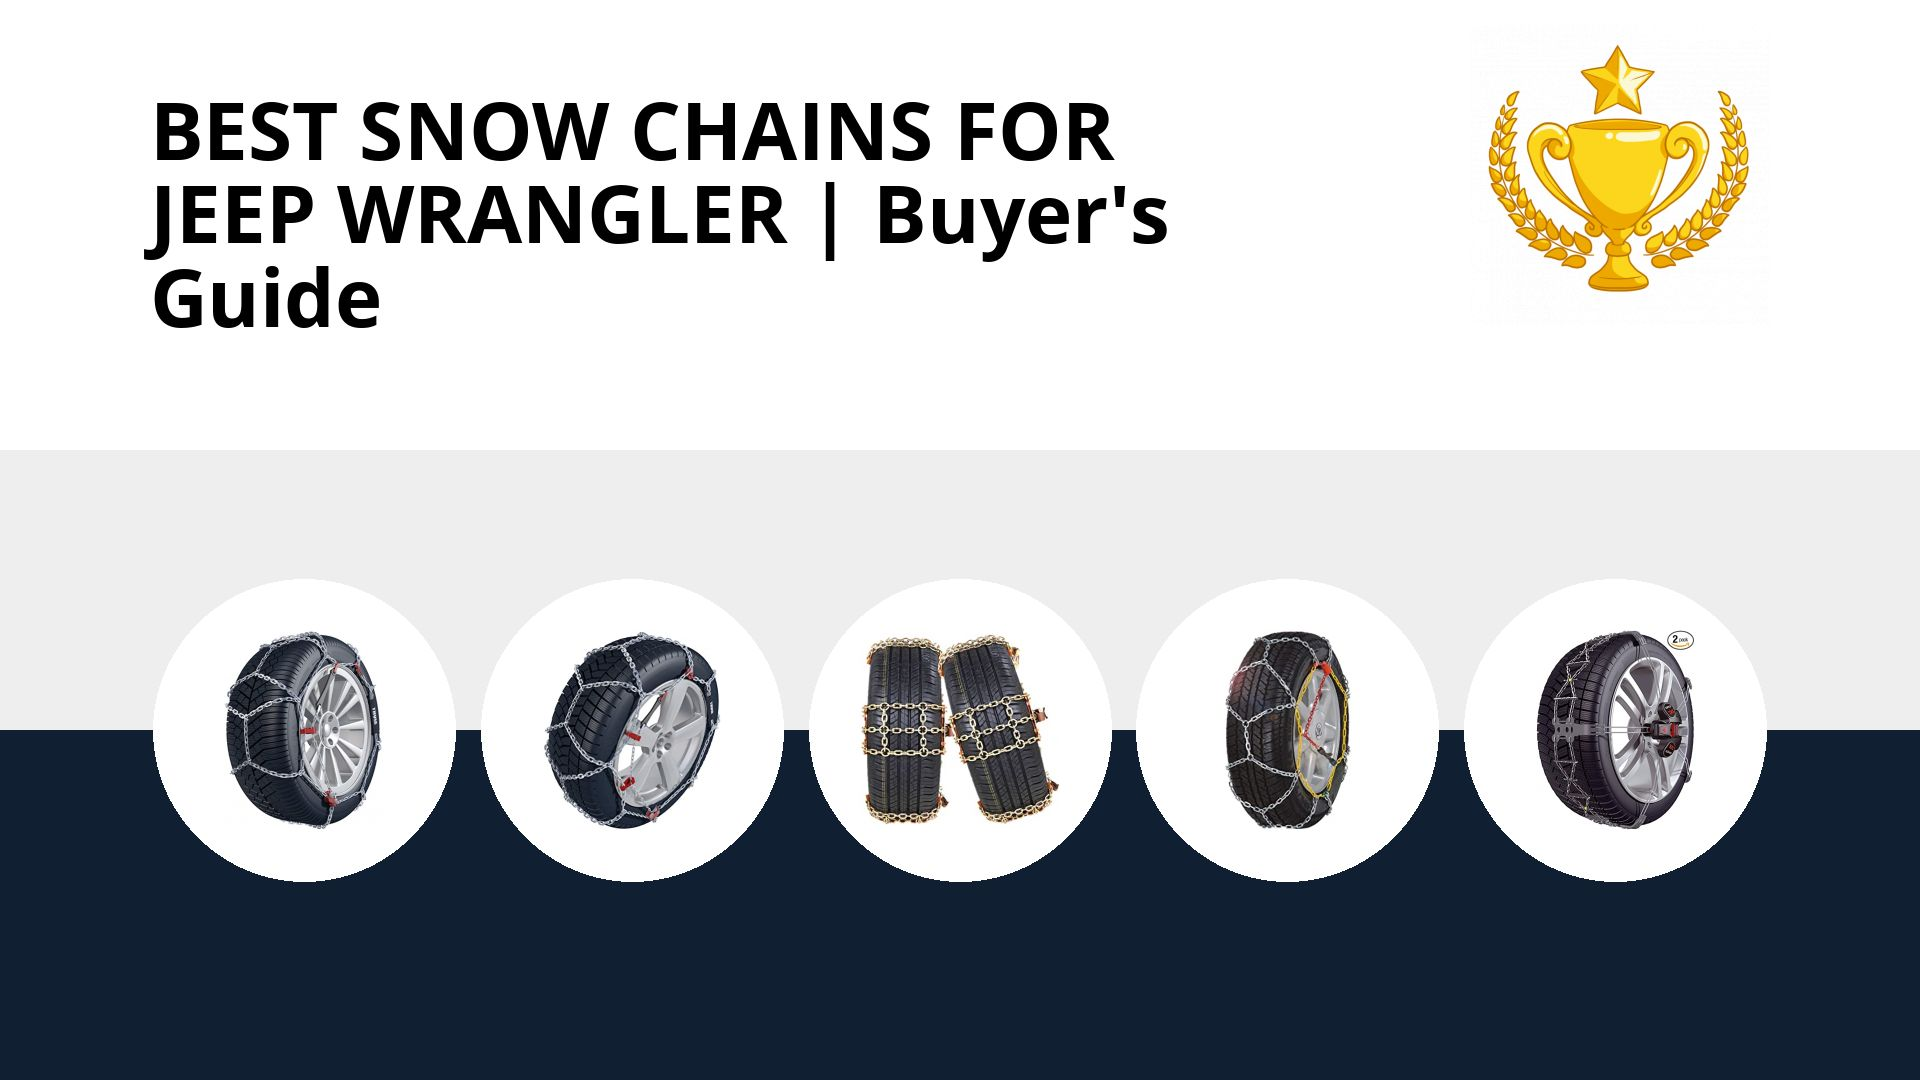 Best Snow Chains For Jeep Wrangler: image